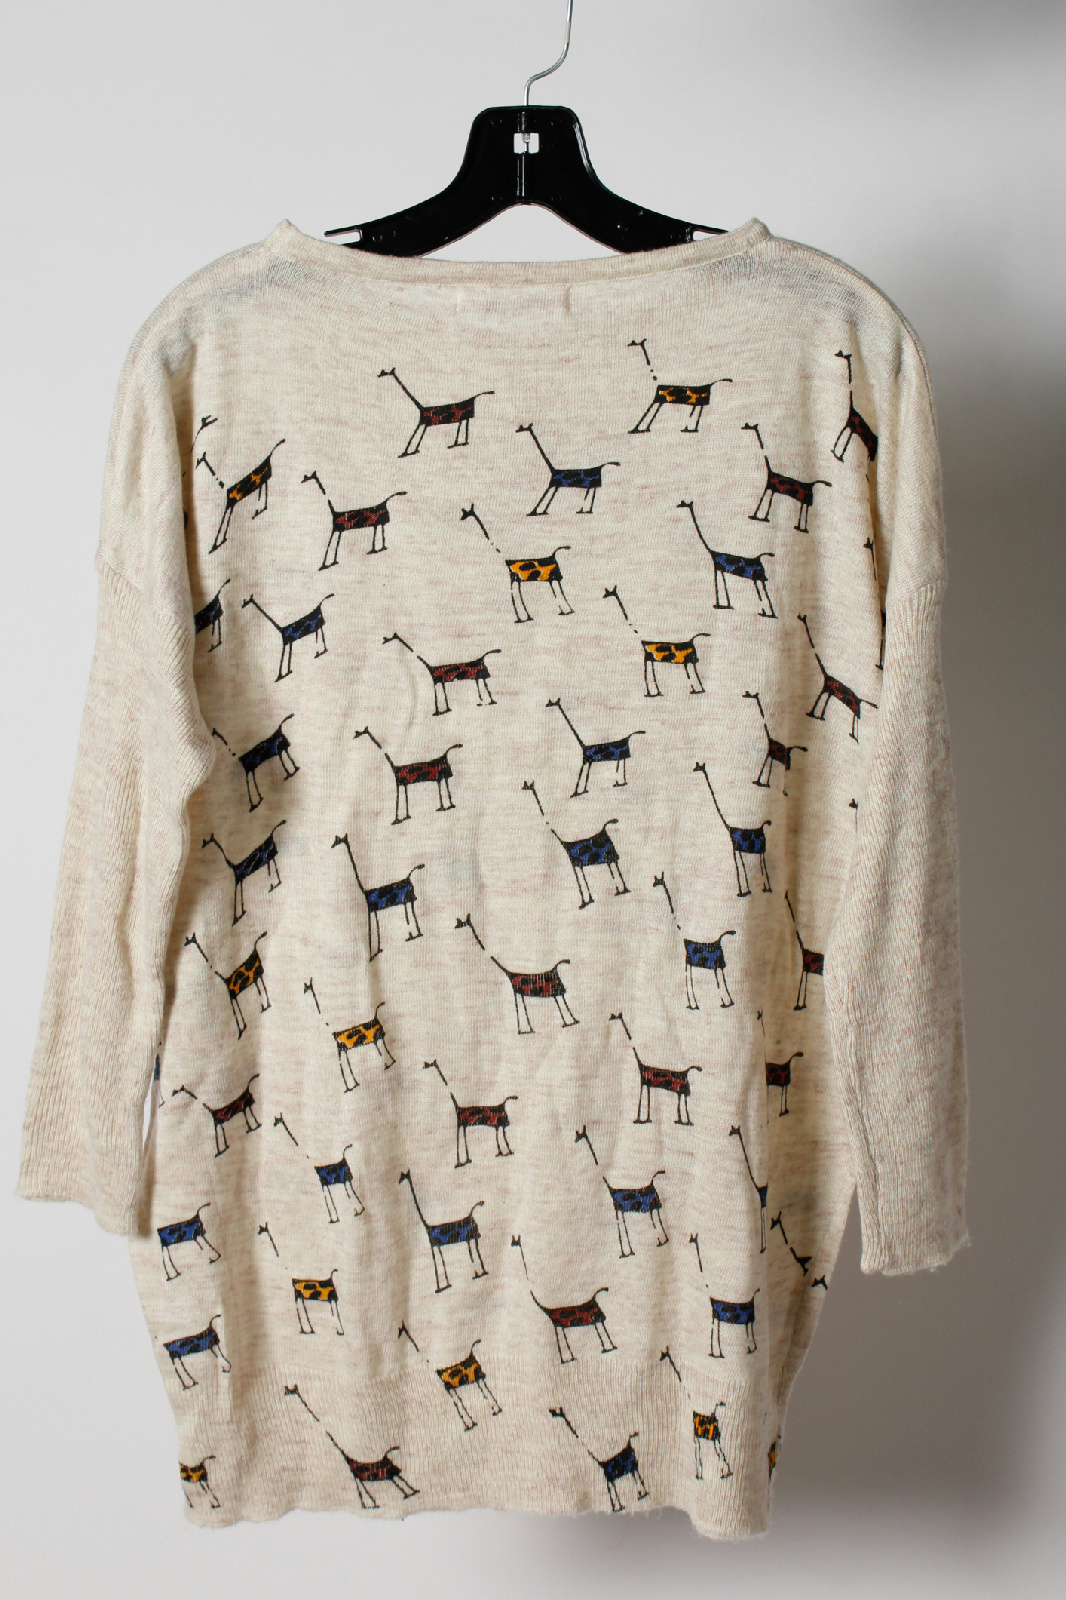 NWT Paper Plane Multi Color Knit Giraffe Batwing Sleeve ...